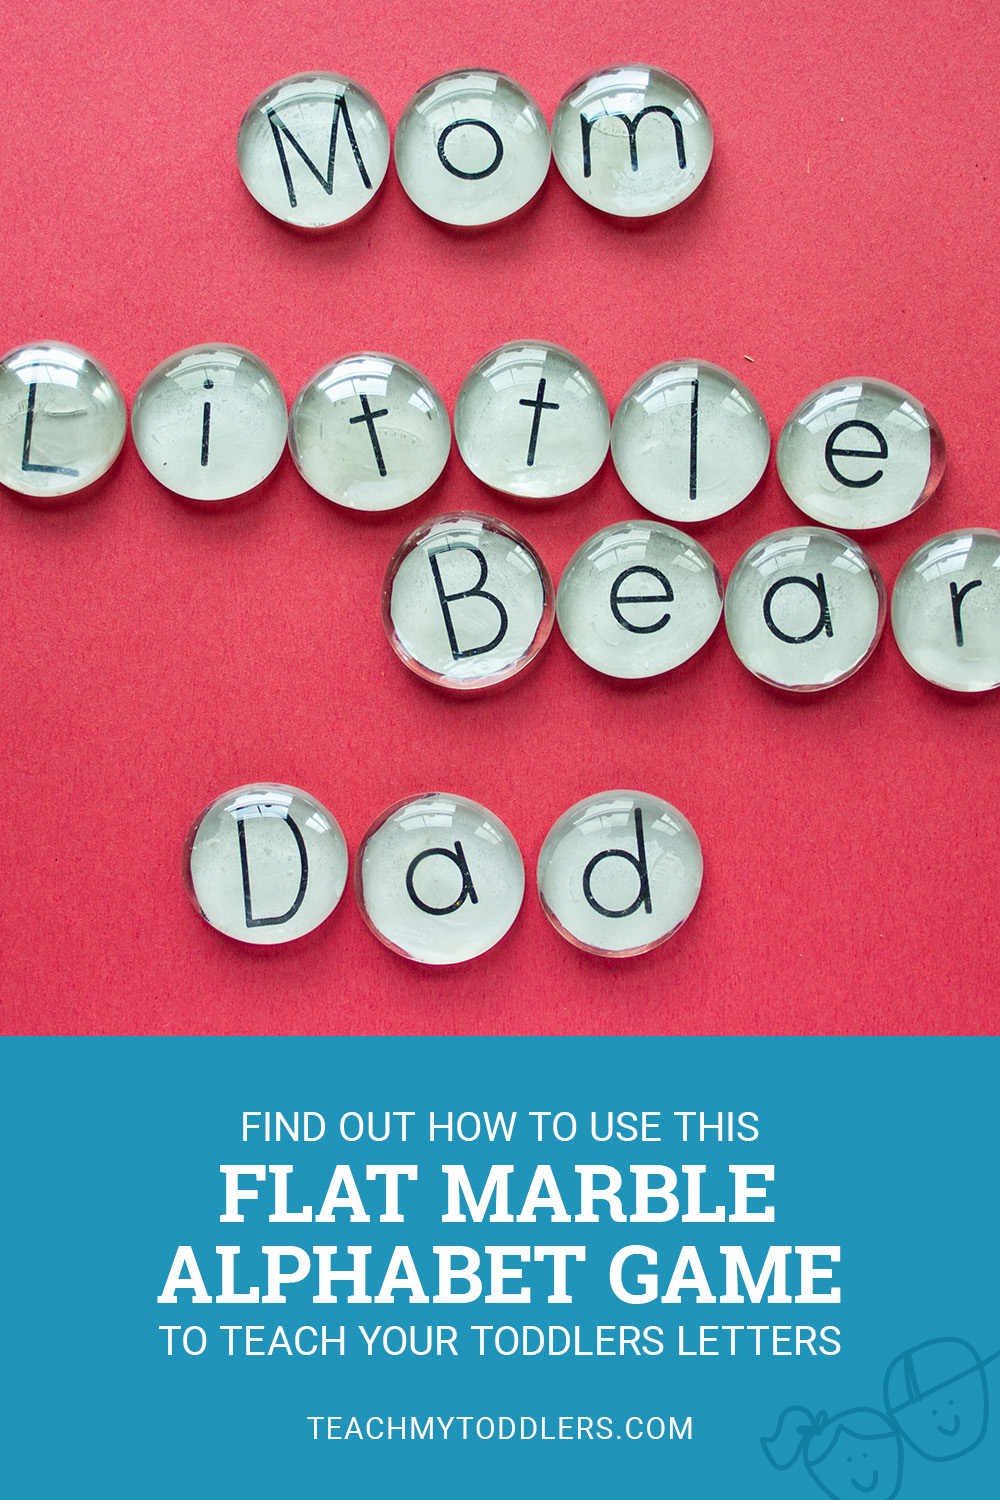 Find out how to use this flat marble alphabet game to teach your toddlers letters